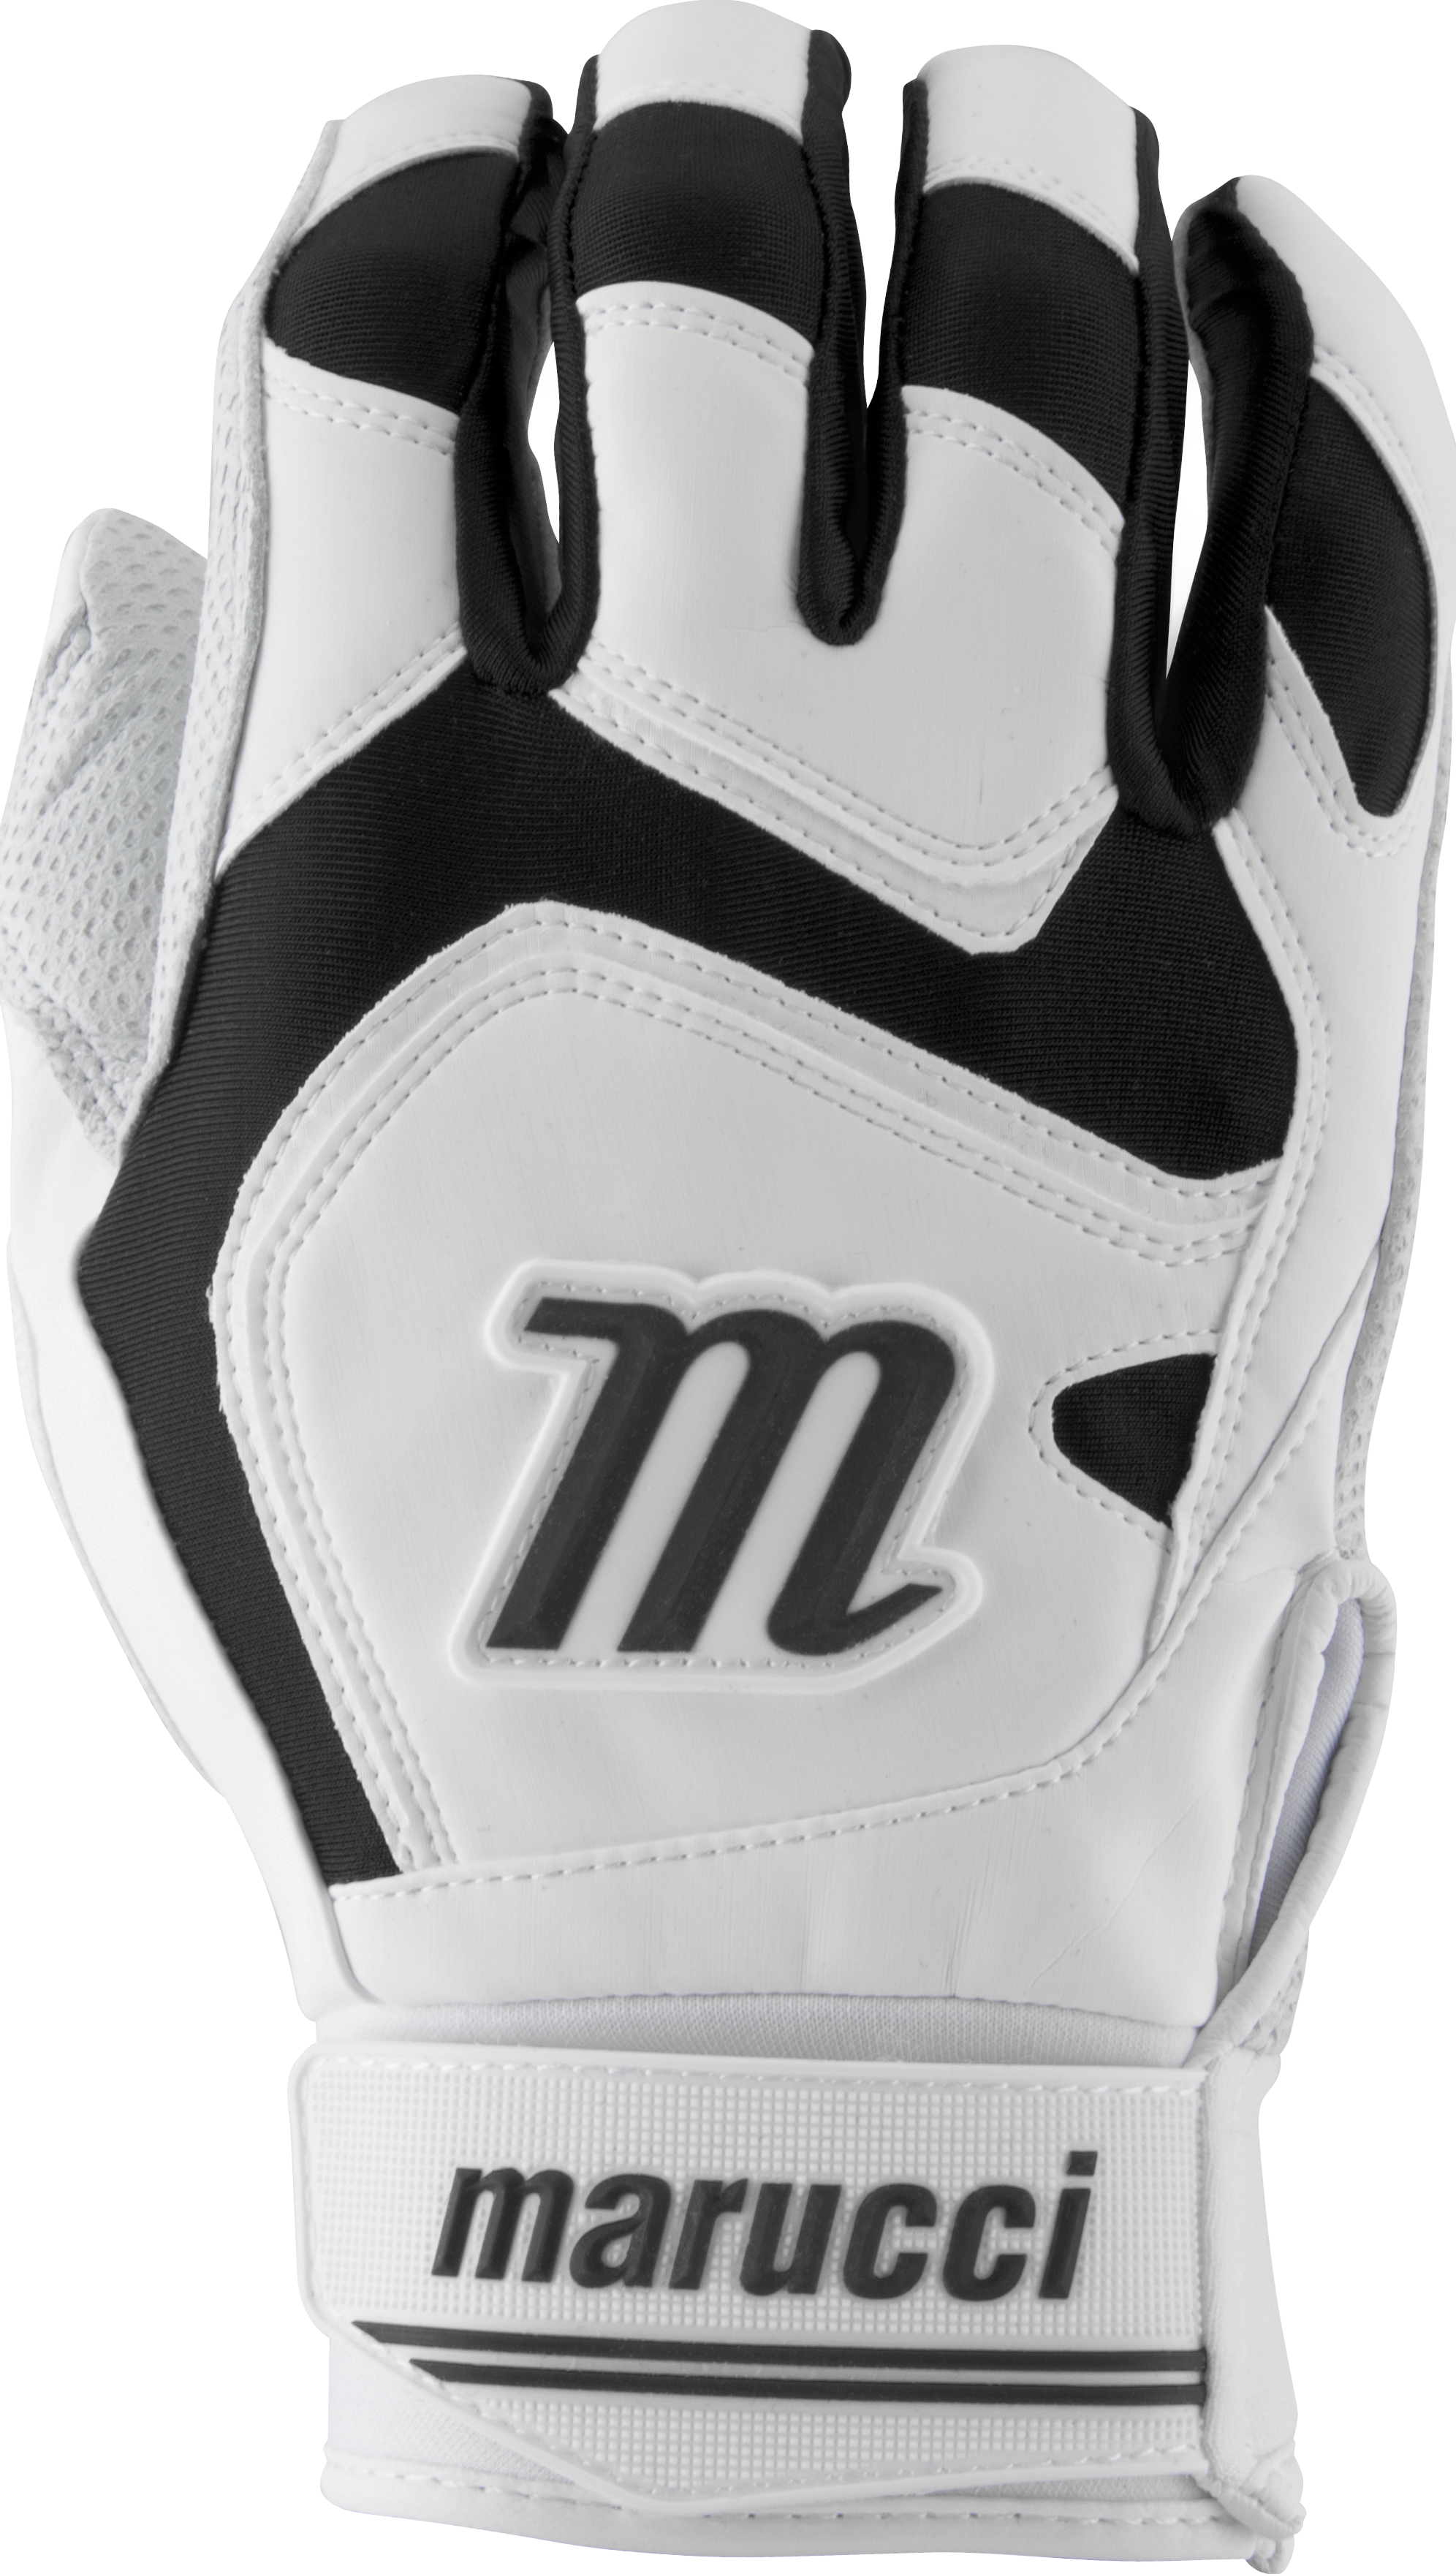 marucci-signature-batting-gloves-mbgsgn2-1-pair-white-black-adult-x-large MBGSGN2-WBK-AXL Marucci 849817096611 2019 Model MBGSGN2-W/BK Consistency And Craftsmanship Commitment To Quality And Understanding